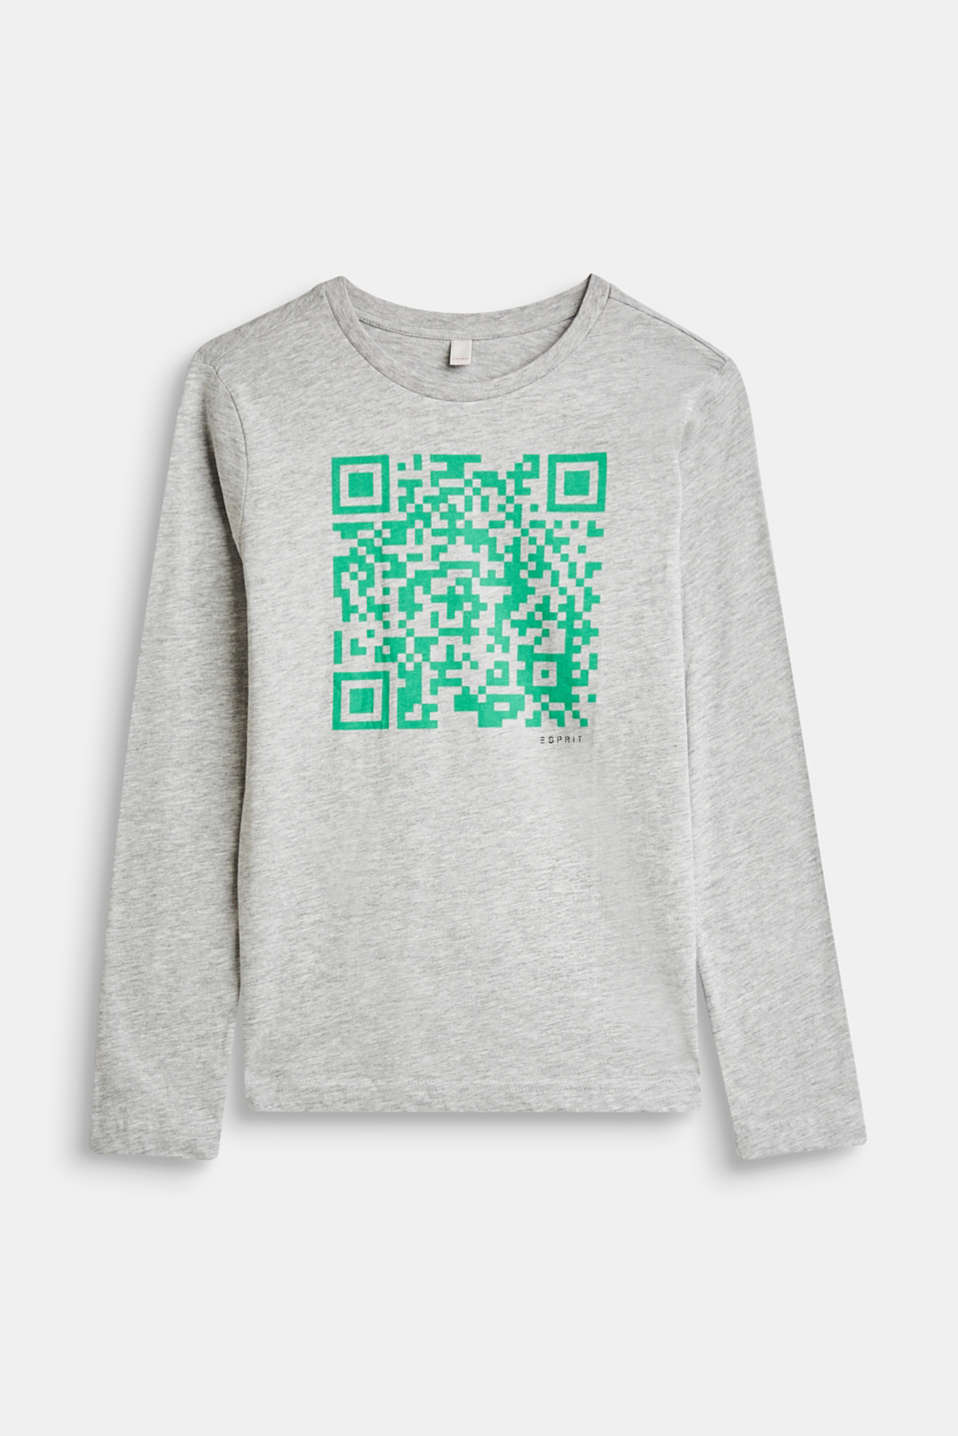 Esprit - Melange long sleeve top with a QR code print